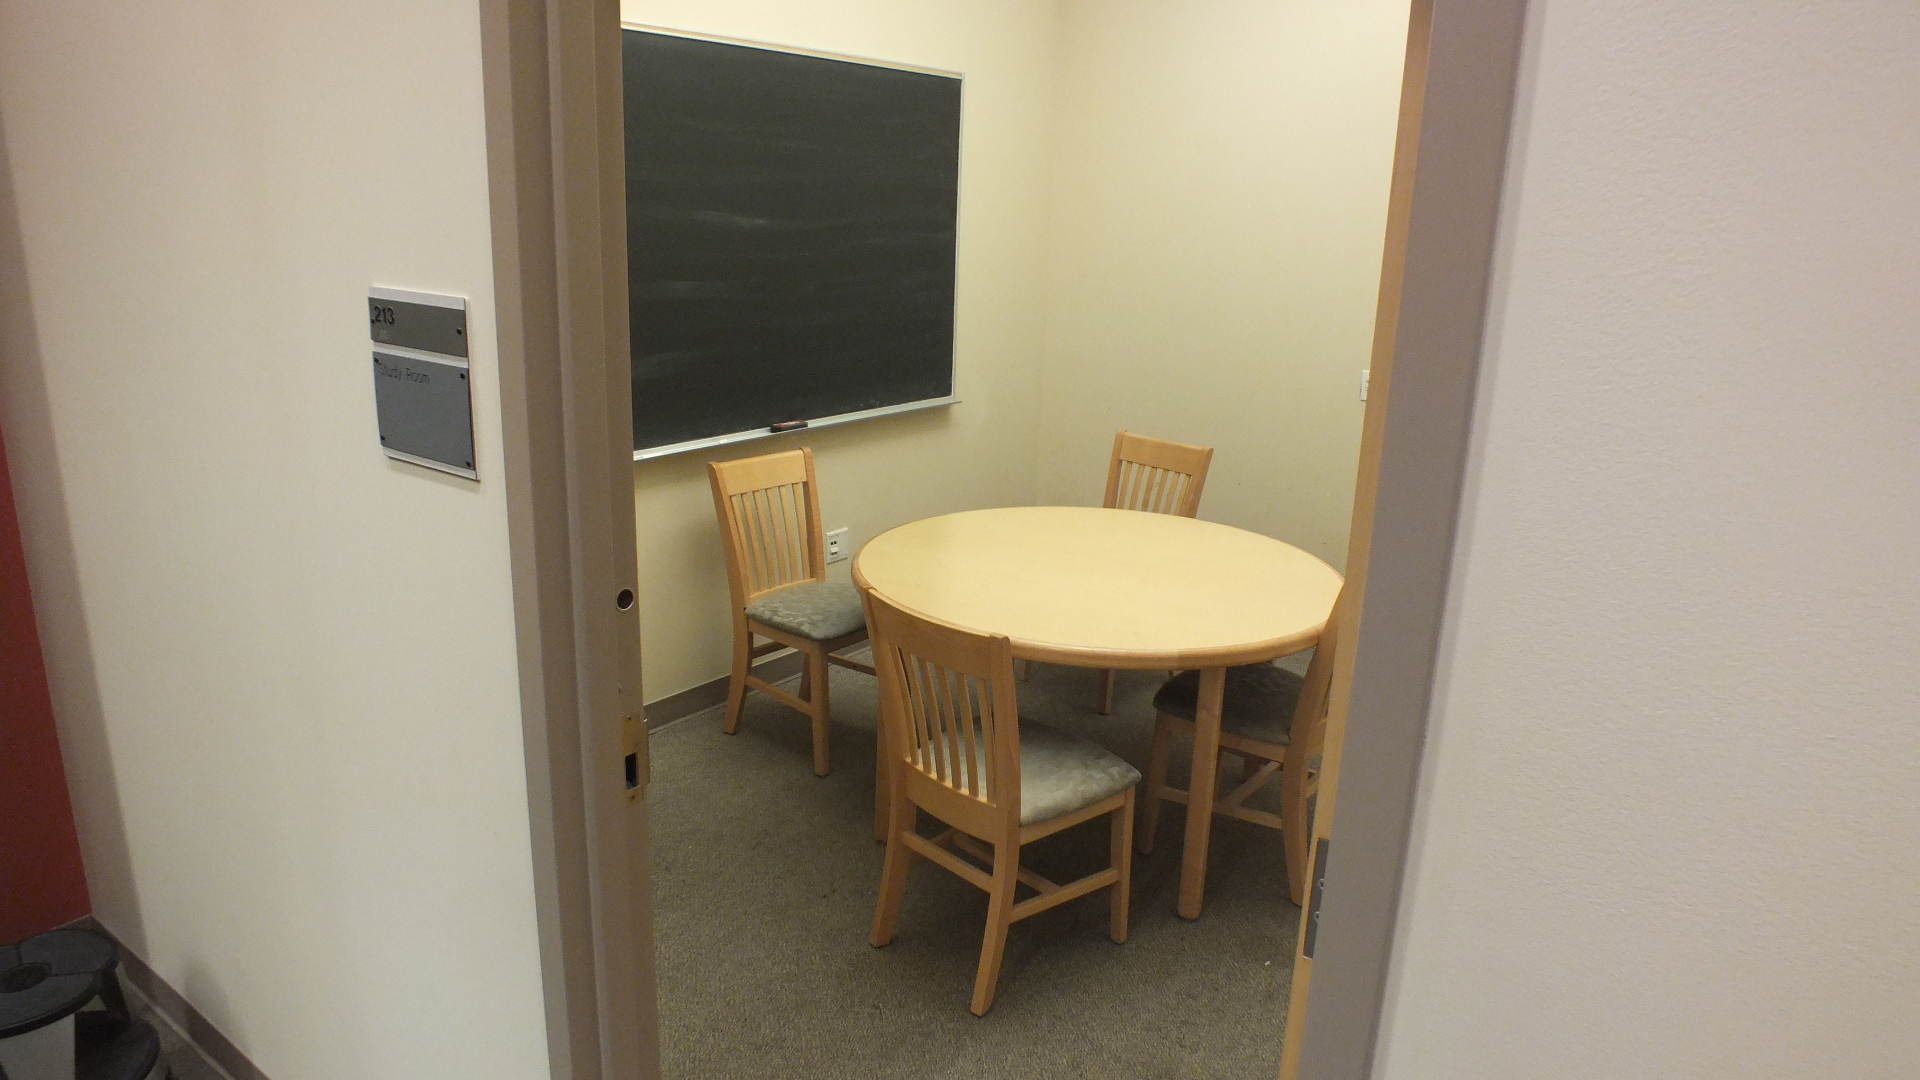 The Chemistry Library is a branch library of the University of Delaware Library and serves students, faculty and staff in Chemistry, Biochemistry and related disciplines. Located on the second floor of Brown Laboratory, the Library provides a specialized collection of ...